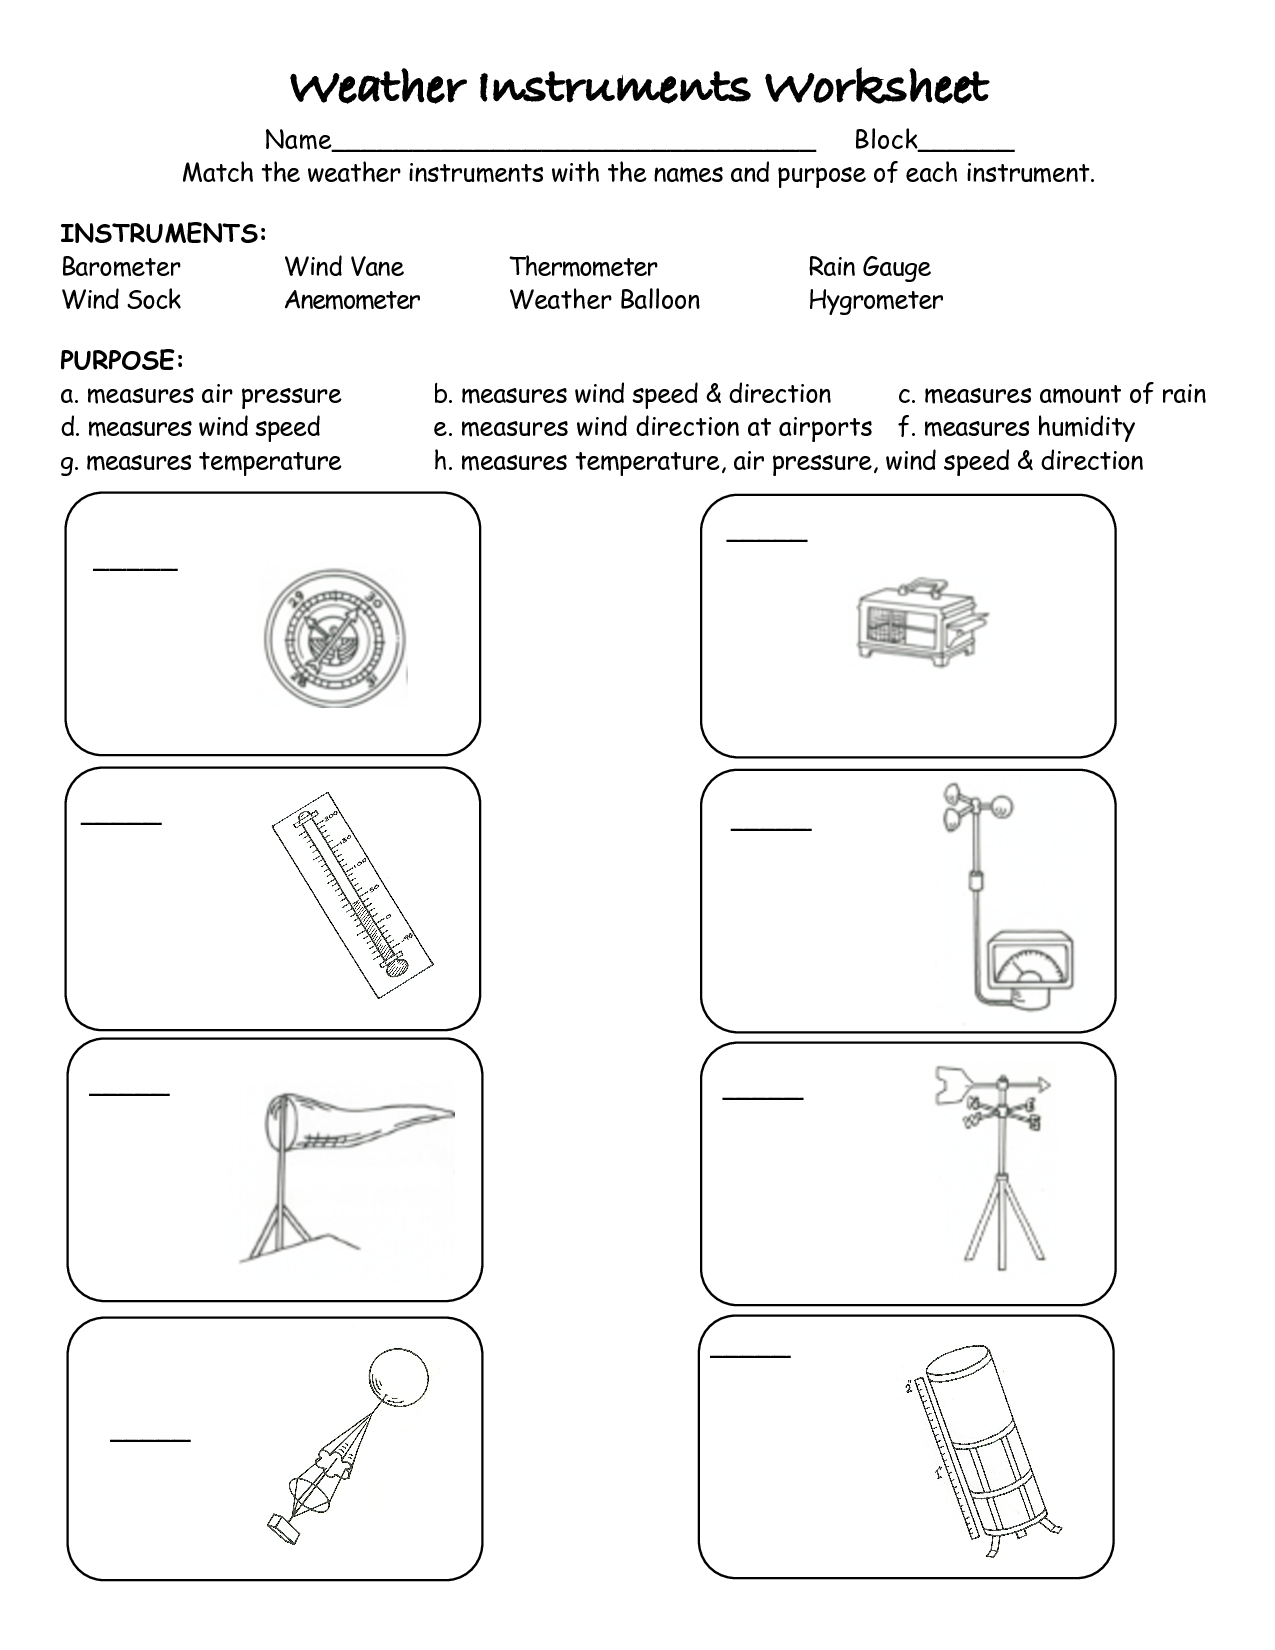 Worksheets Weather Instruments Weather Worksheets